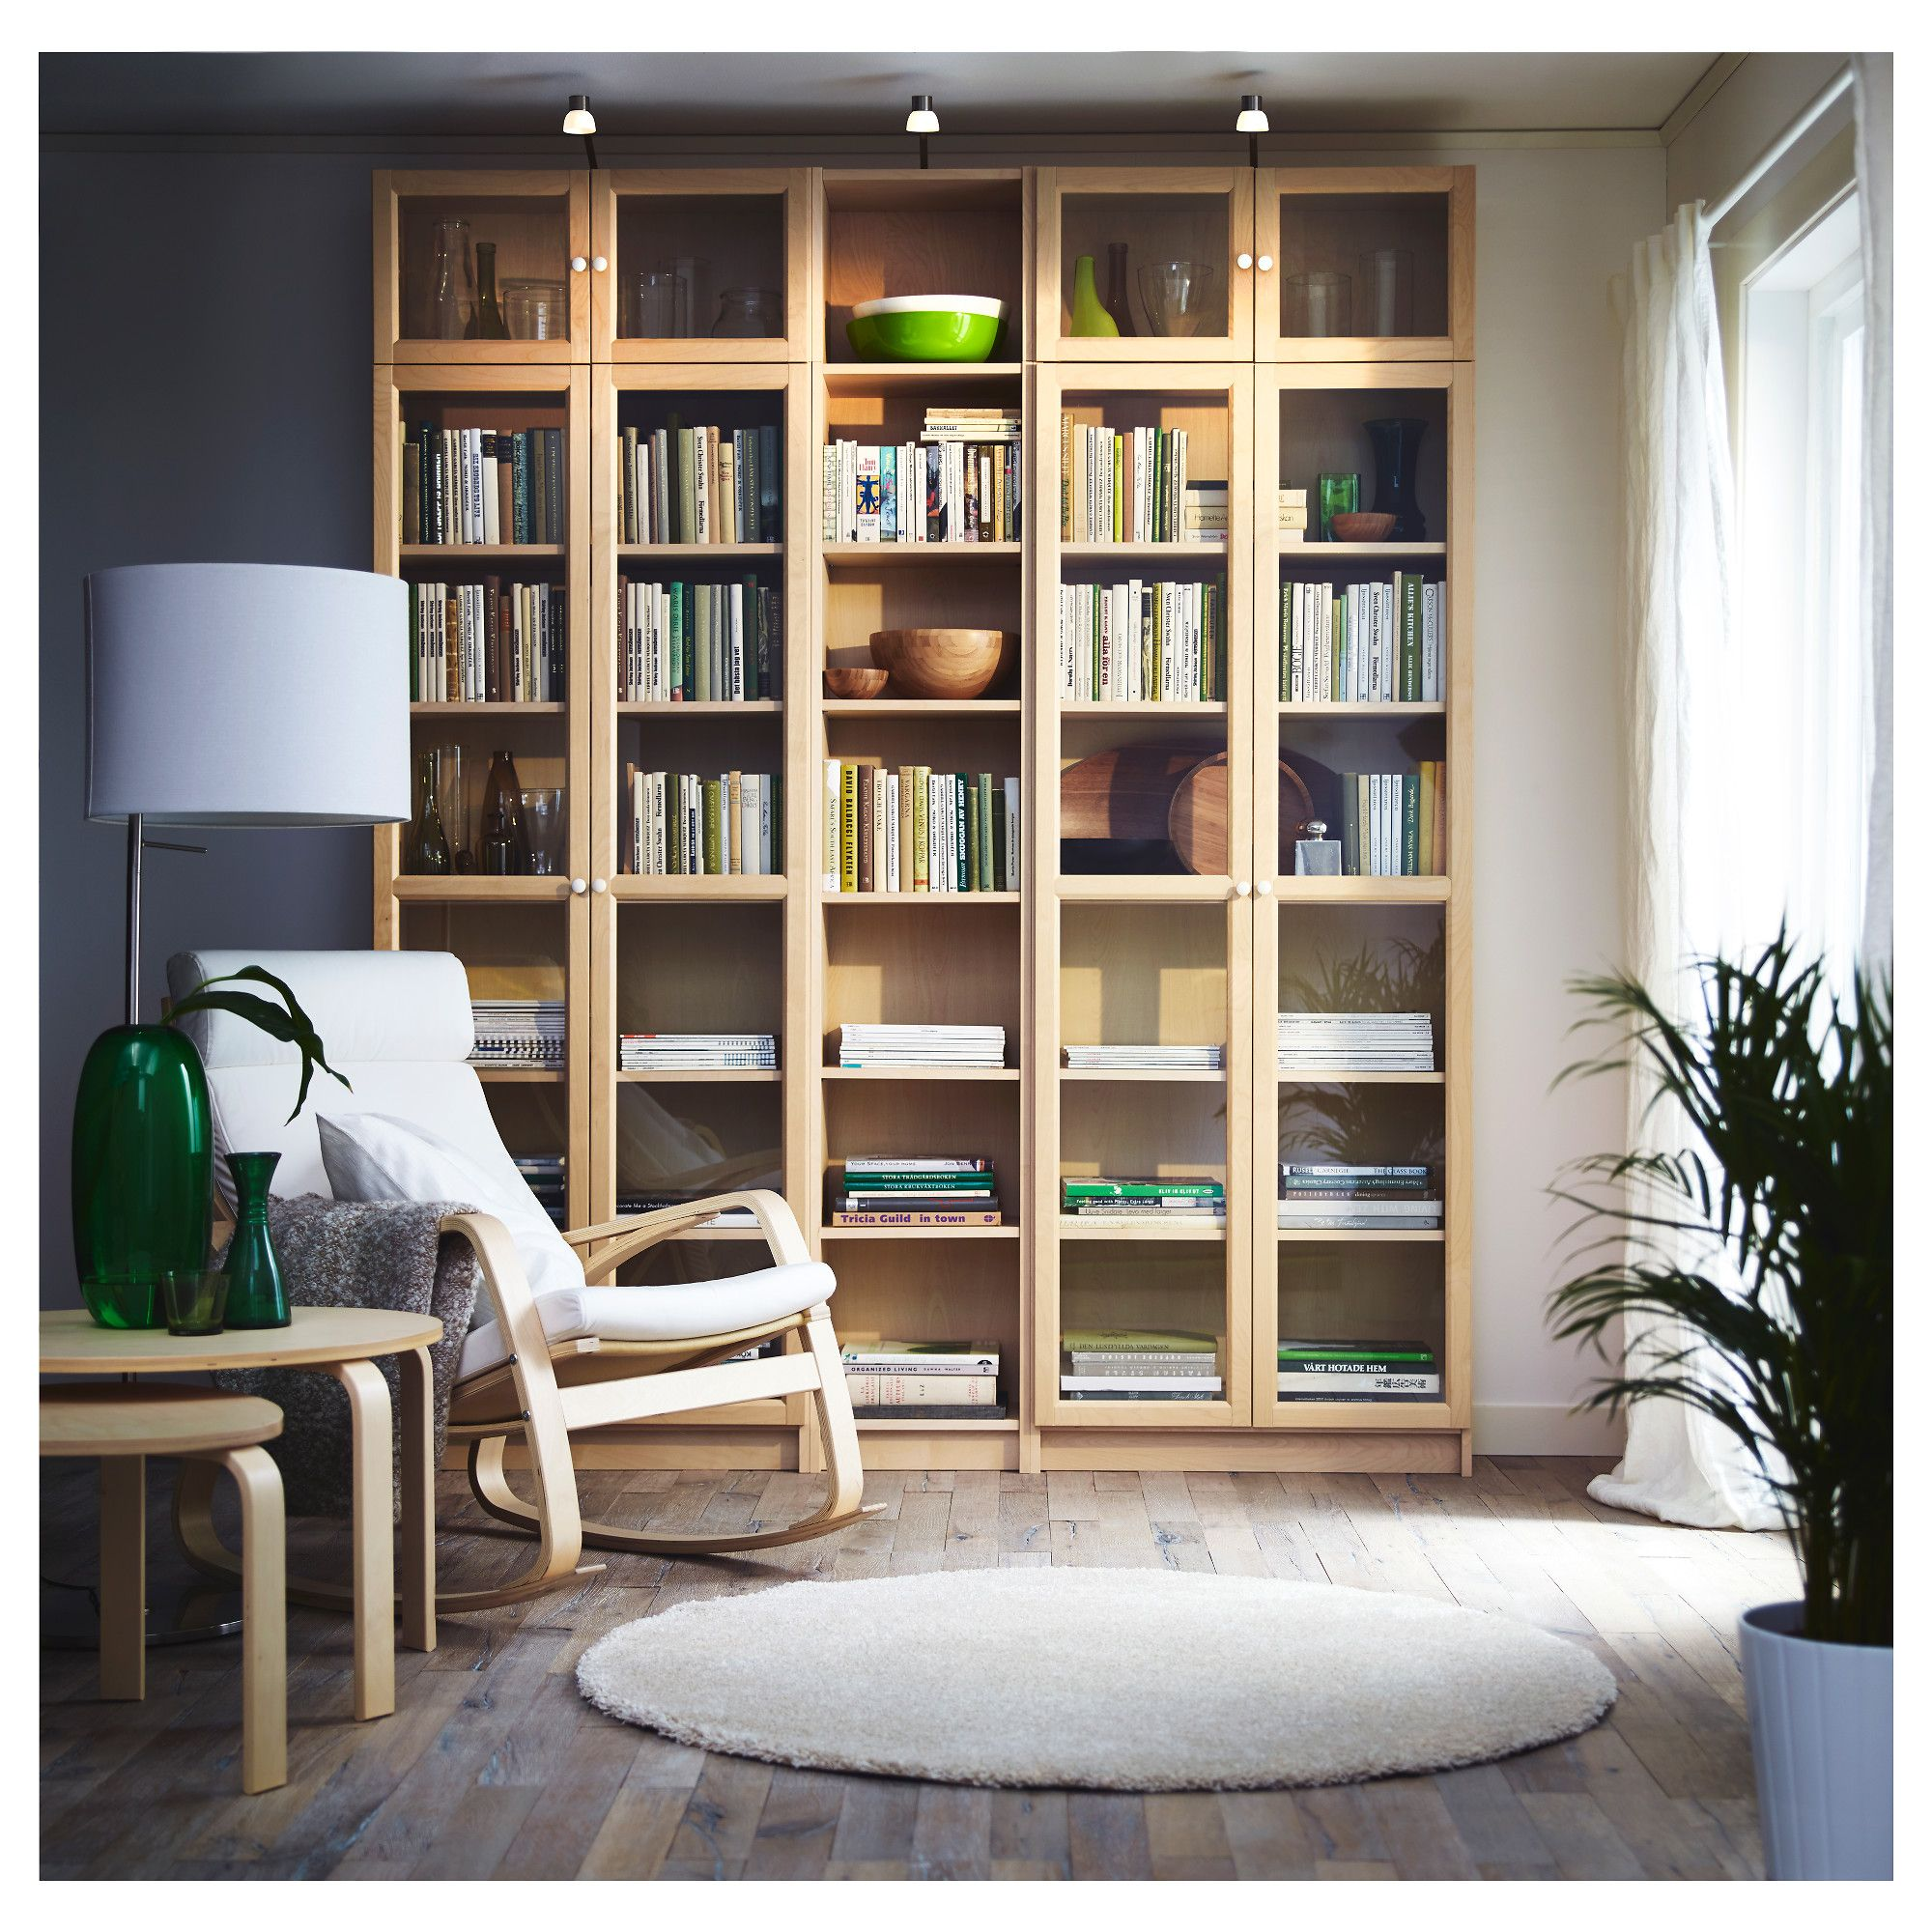 23 Ingenious Ikea Billy Bookcase Hacks Projects To Try Pinterest